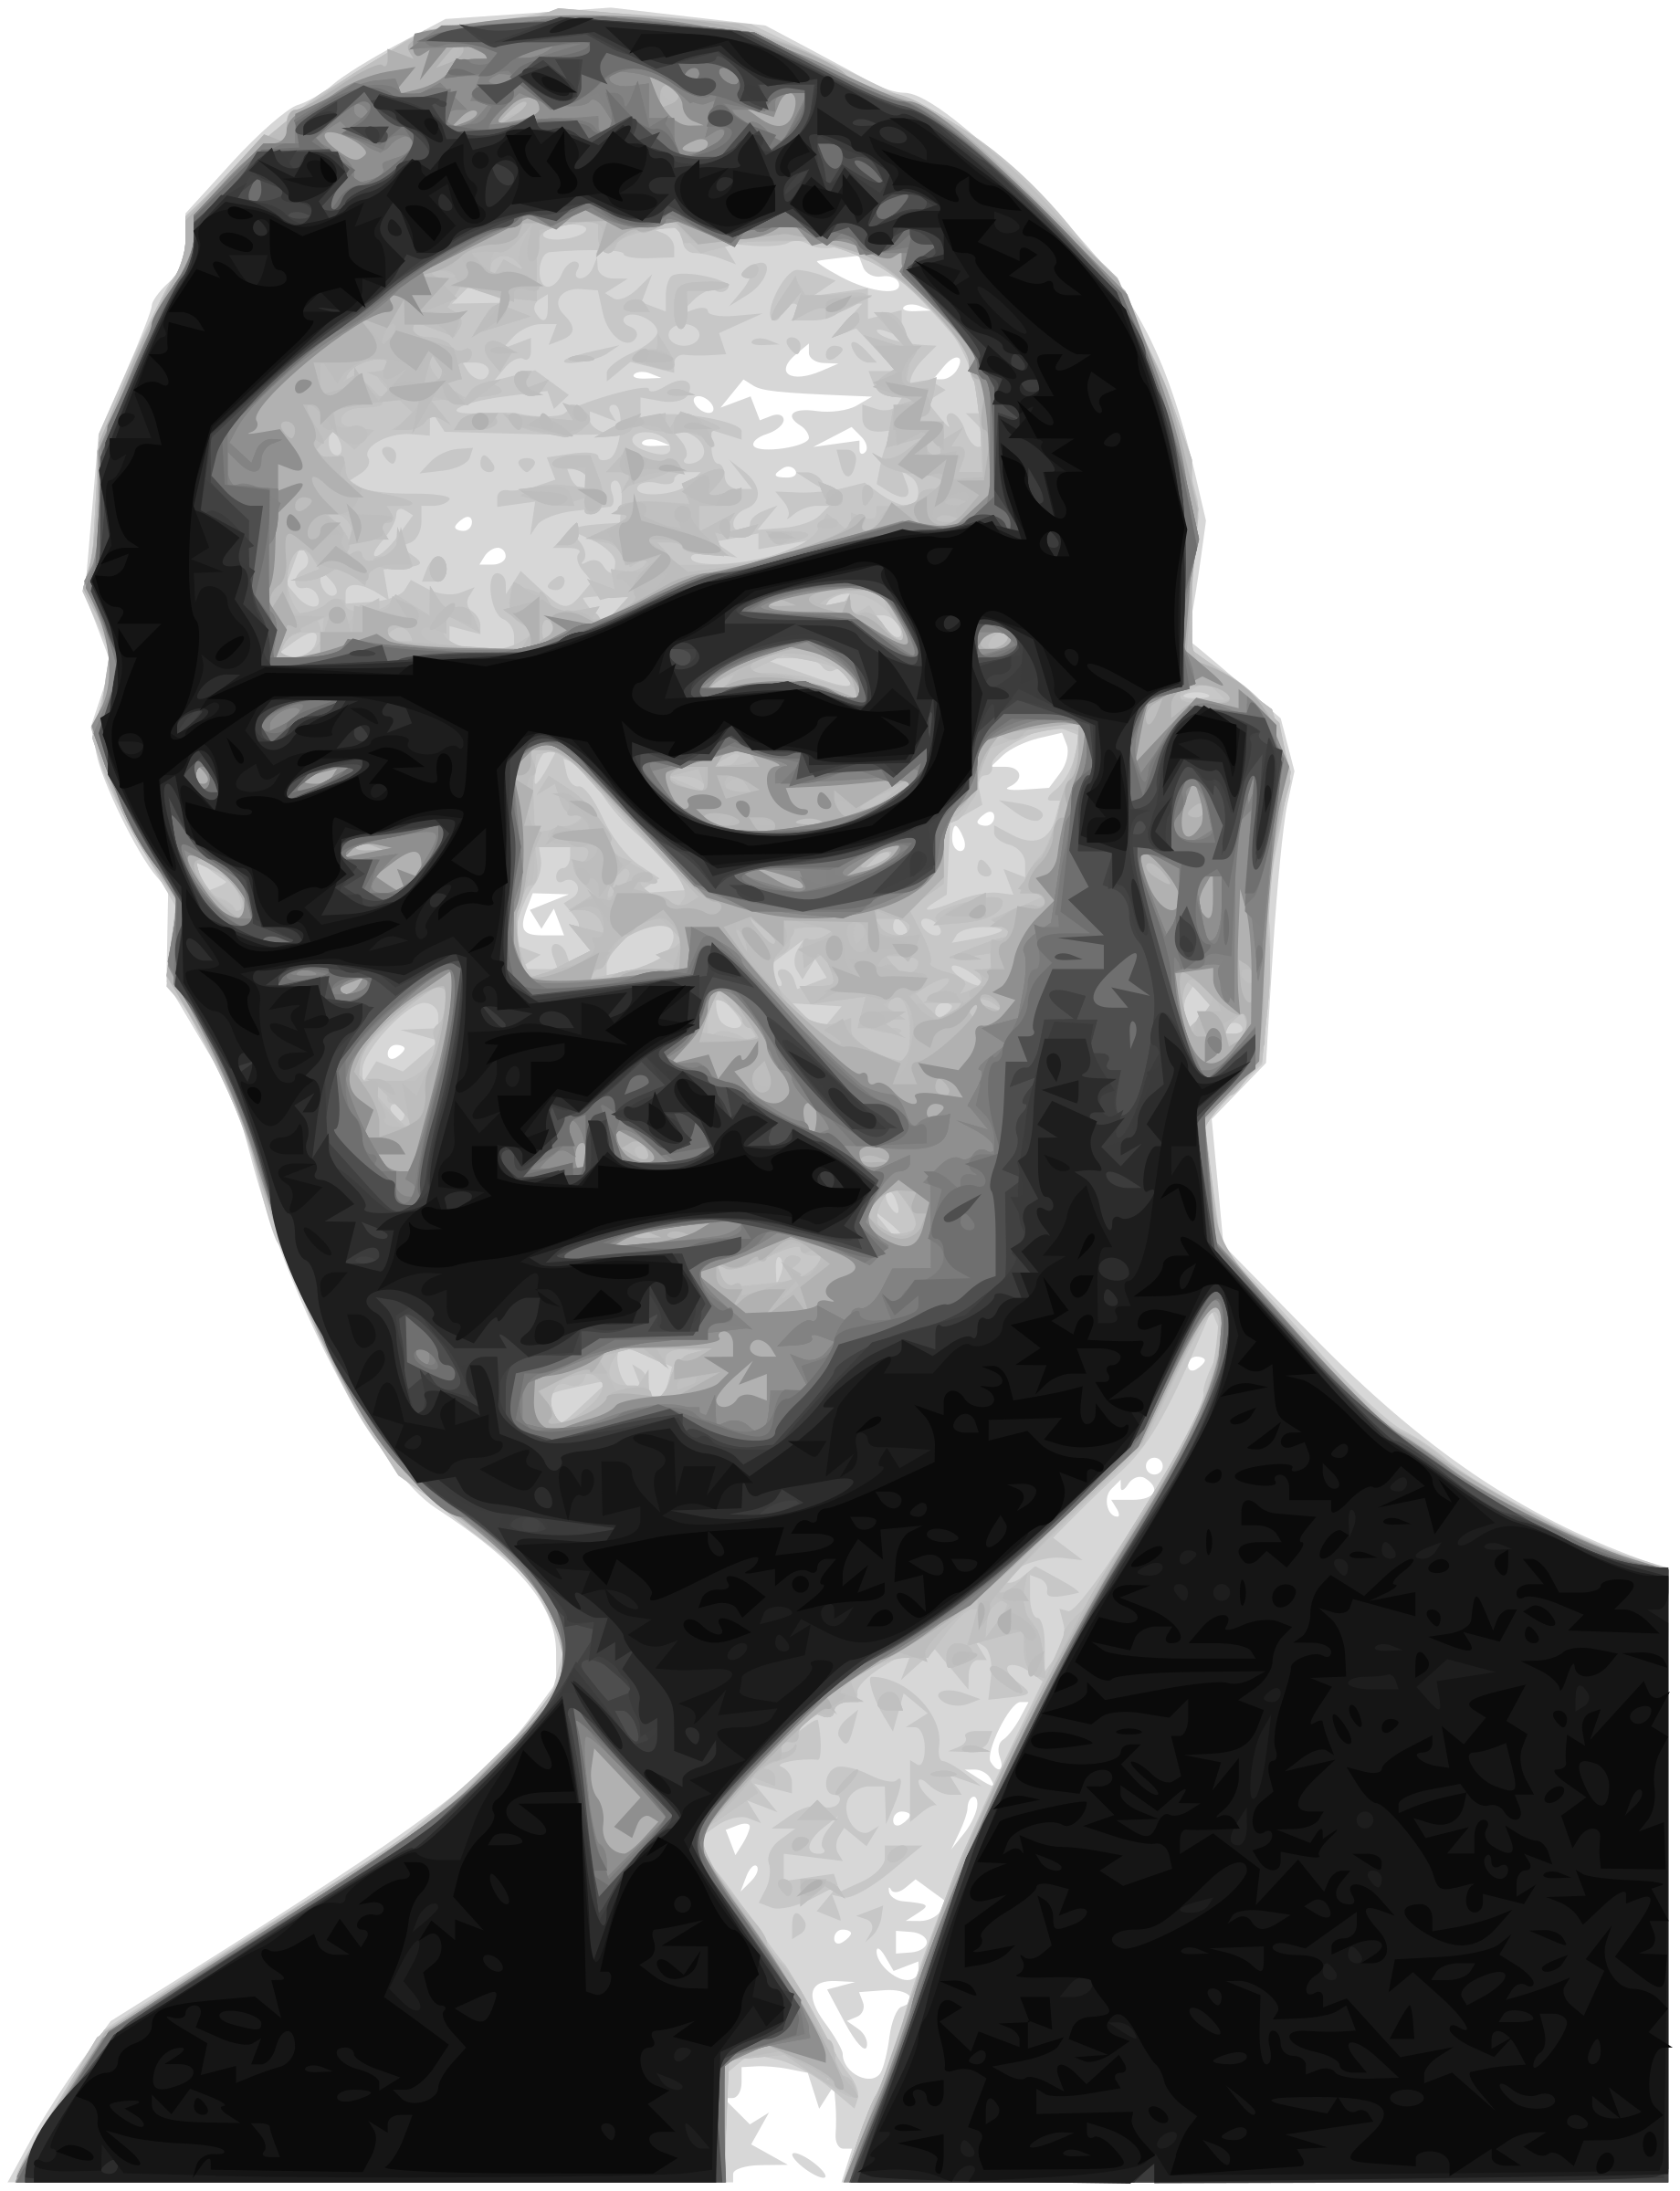 Salvador Allende Greyscale 56th President of the Senate of the Republic of Chile by Merlin2525